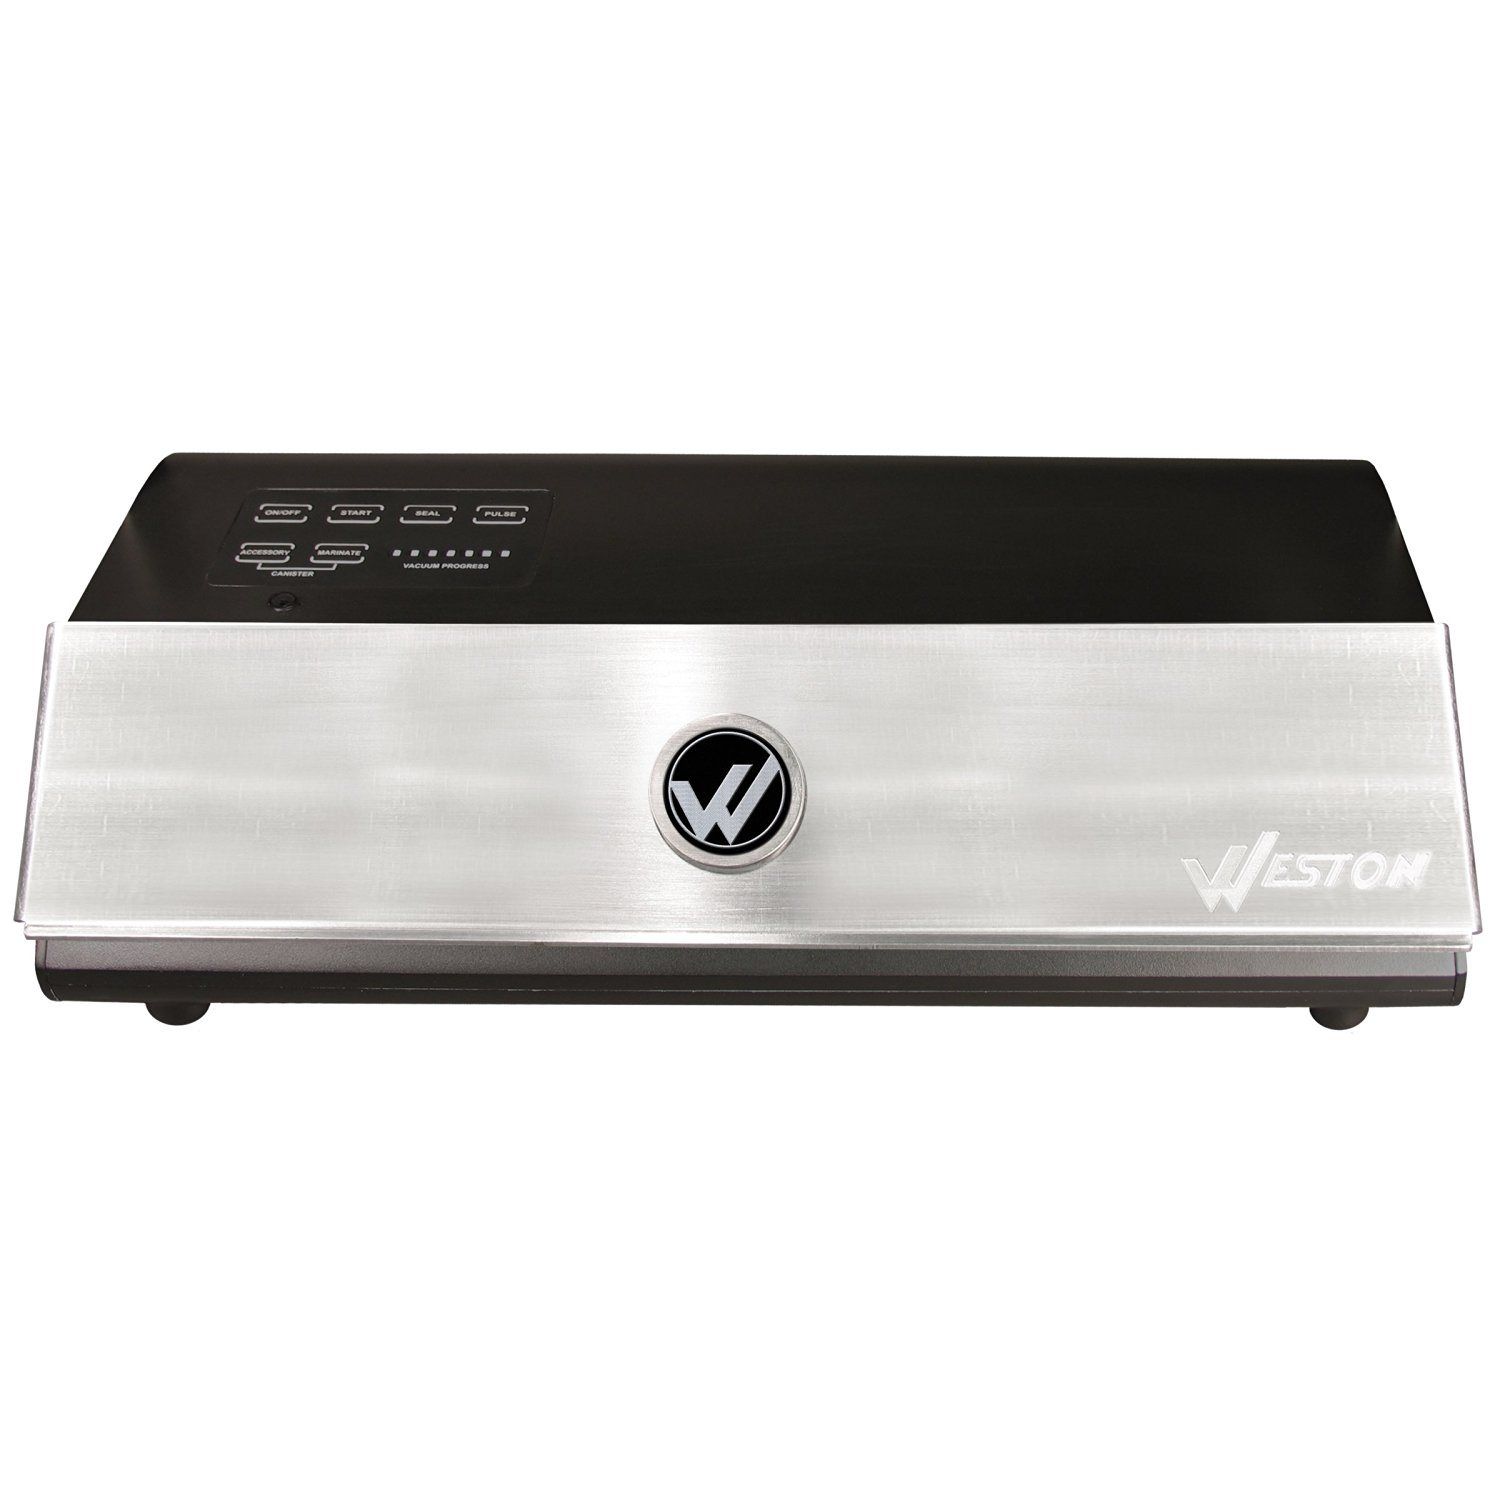 Weston vacuum sealer ProAdvantage